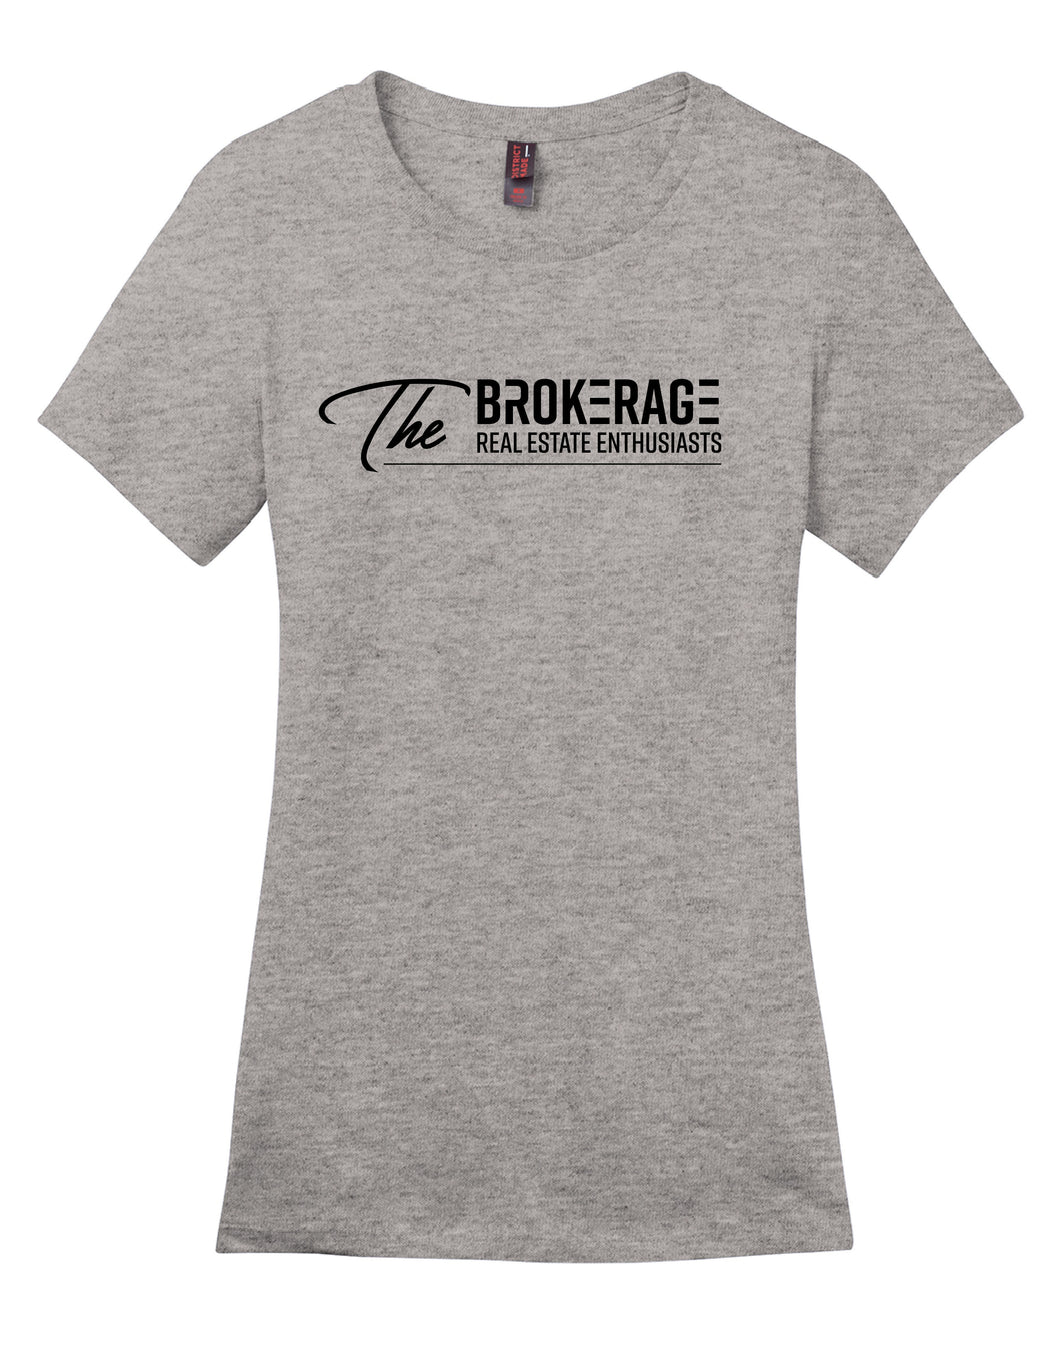 The Brokerage - Women's Perfect Weight Tee (Heathered Steel)